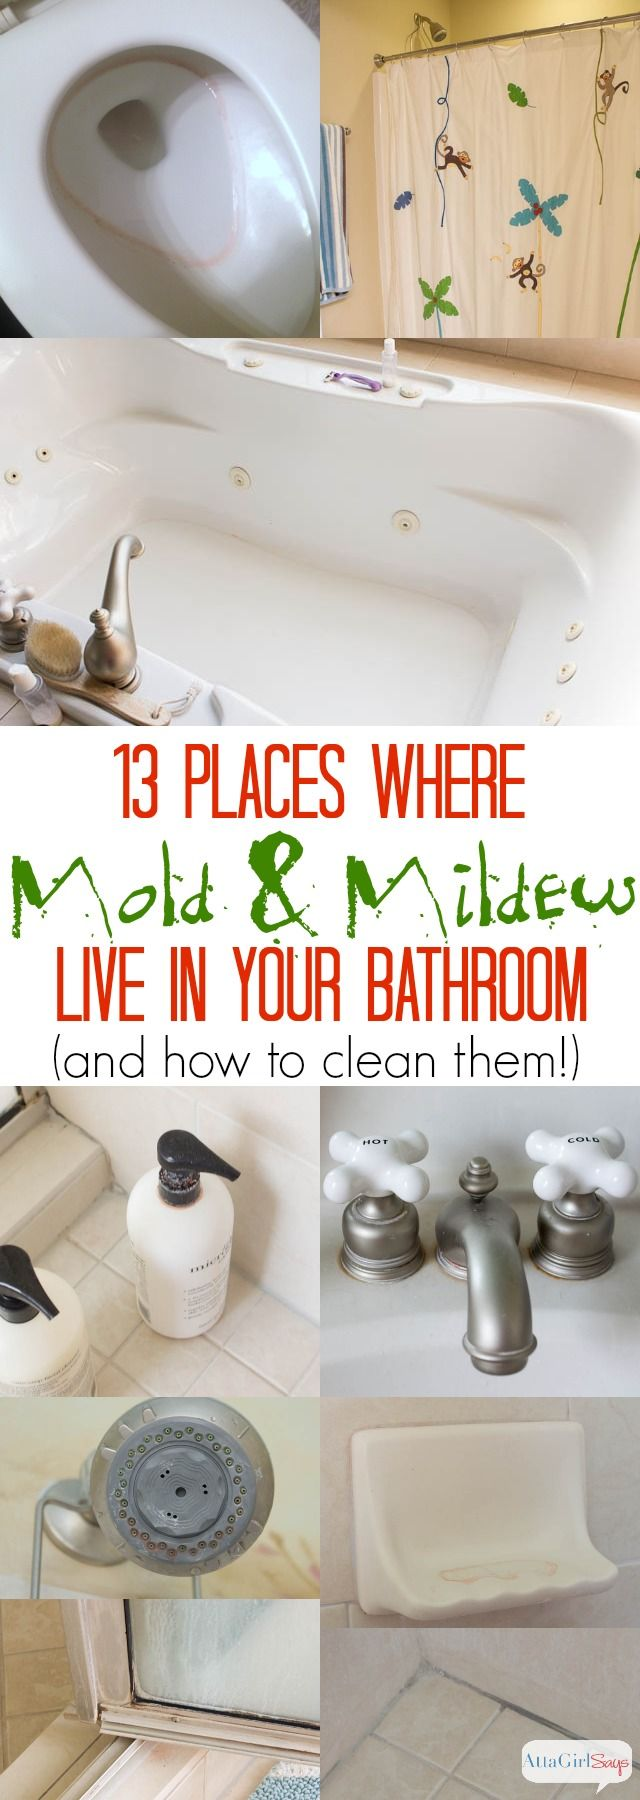 Best 25 Mold In Bathroom Ideas On Pinterest Clean Shower Mildew Bathtub Cleaning Tips And